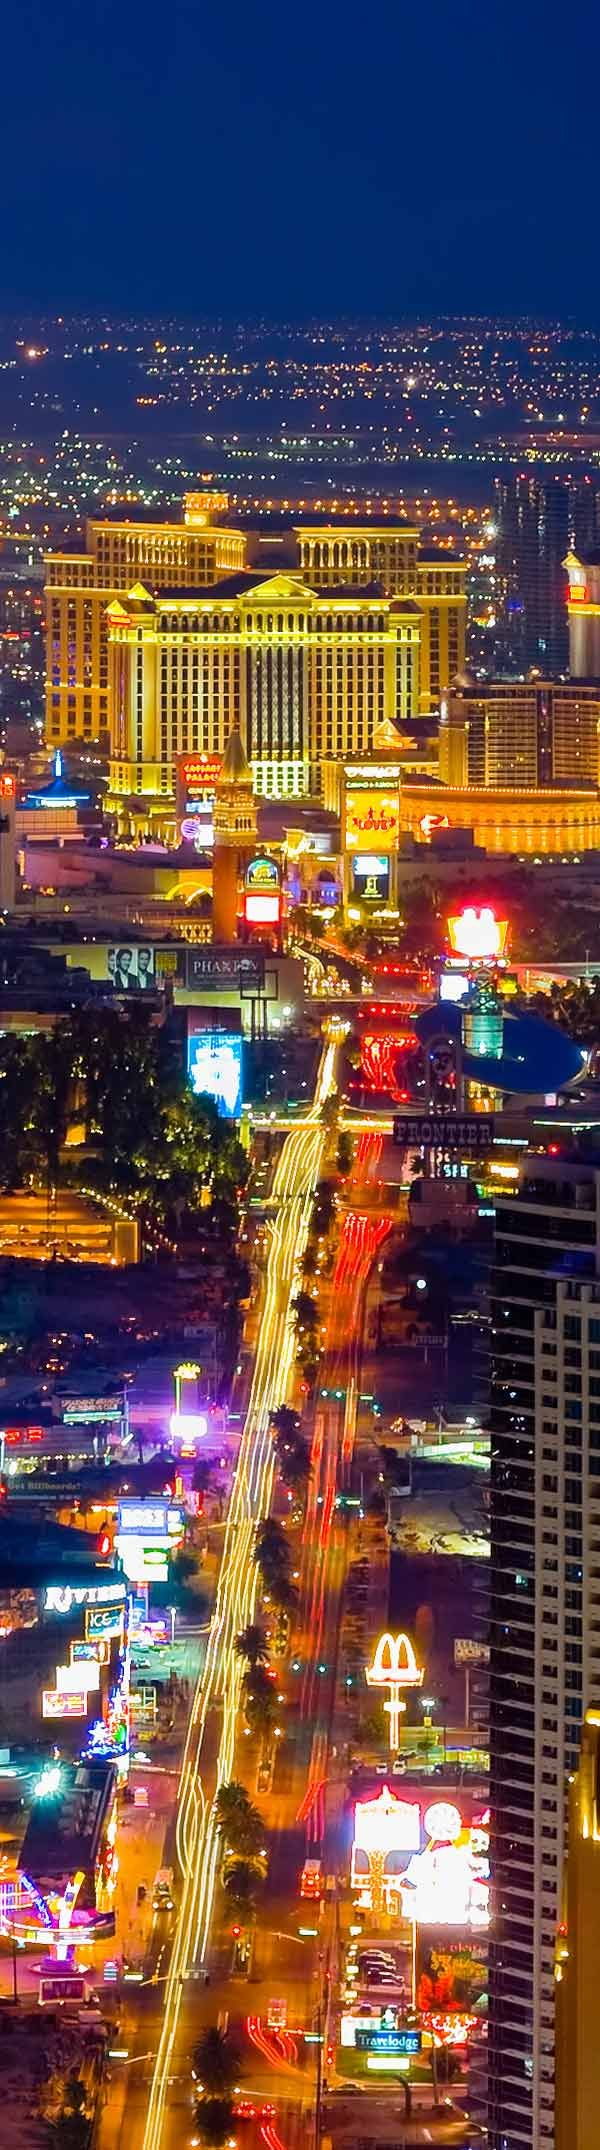 Las Vegas Strip Nevada USA been there